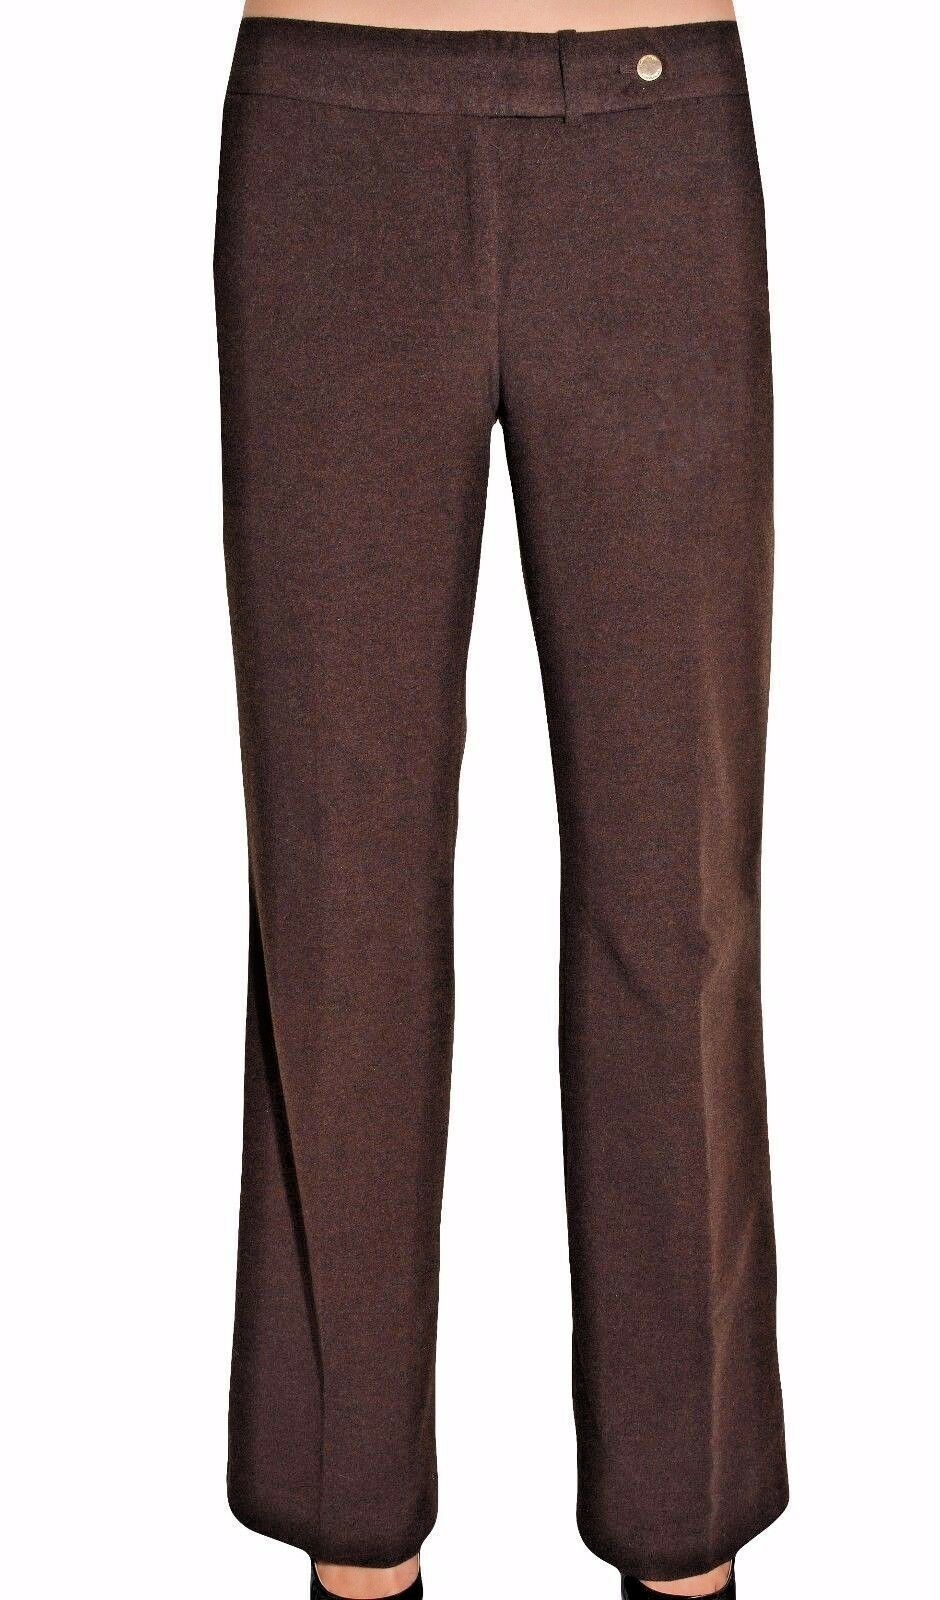 Primary image for Calvin Klein Women's Classic Fit Lined Dress Pant Trousers  Brown  Sz 10